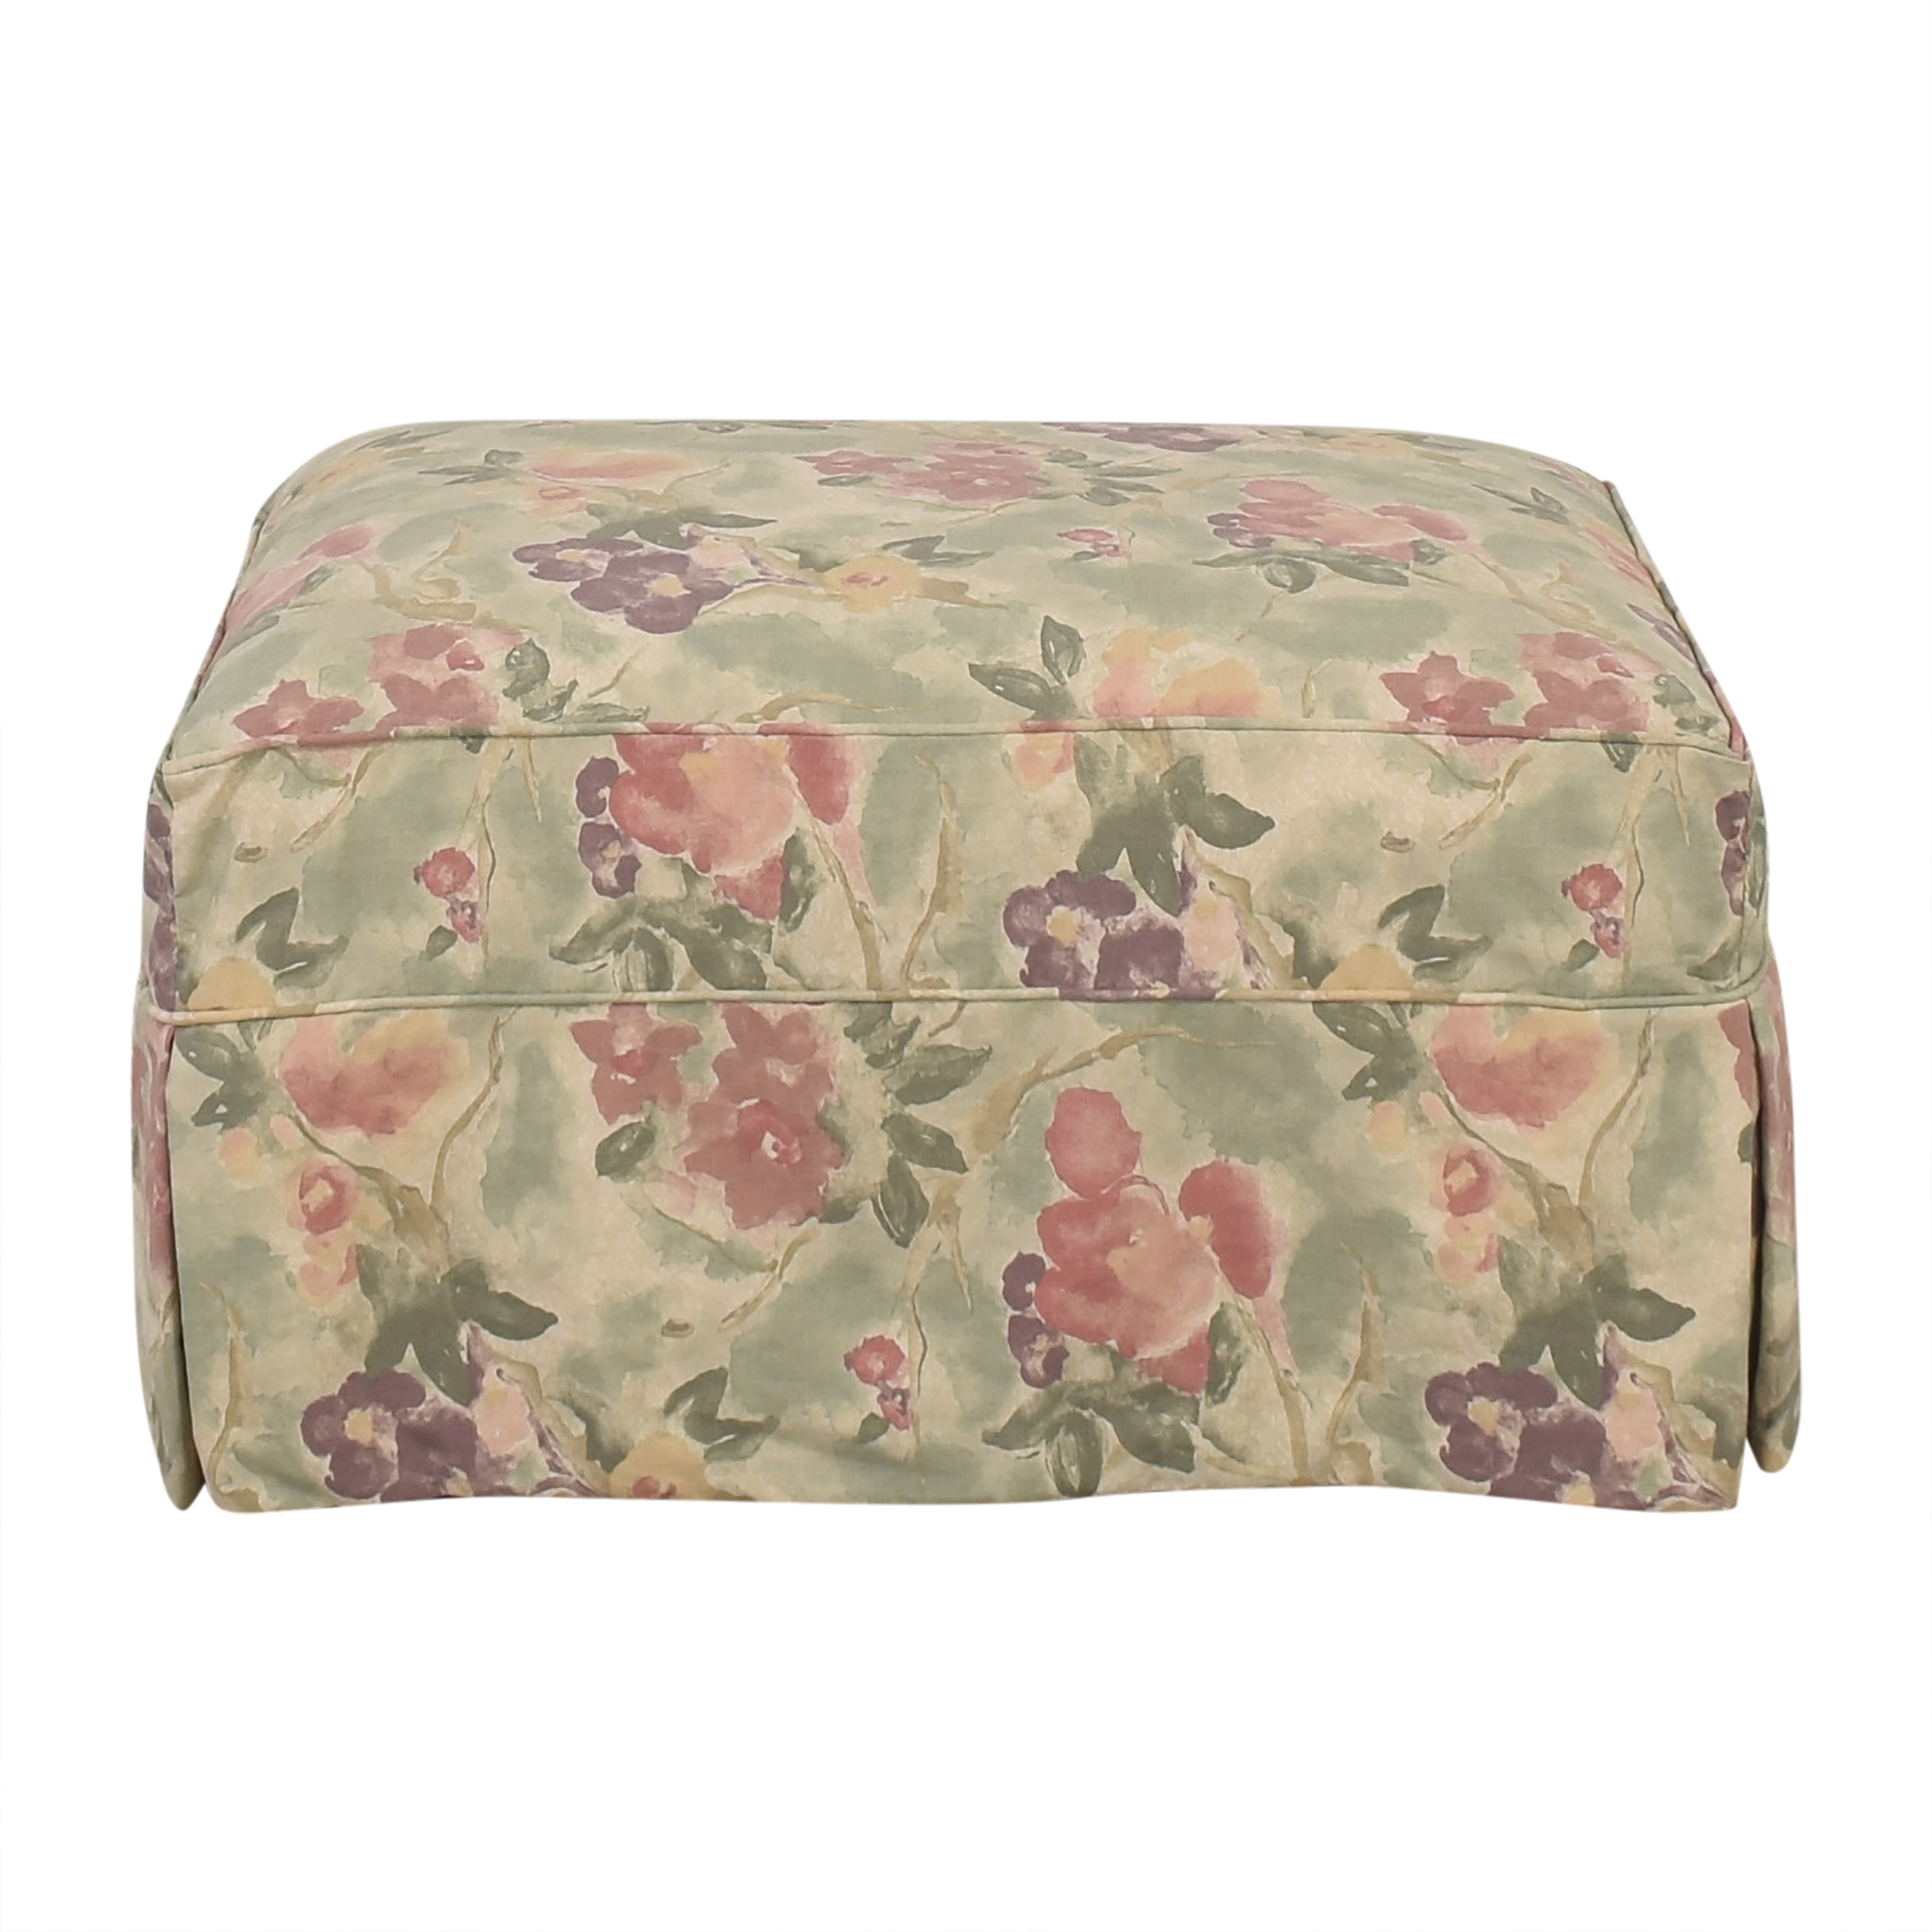 Crate & Barrel Slipcovered Ottoman / Chairs